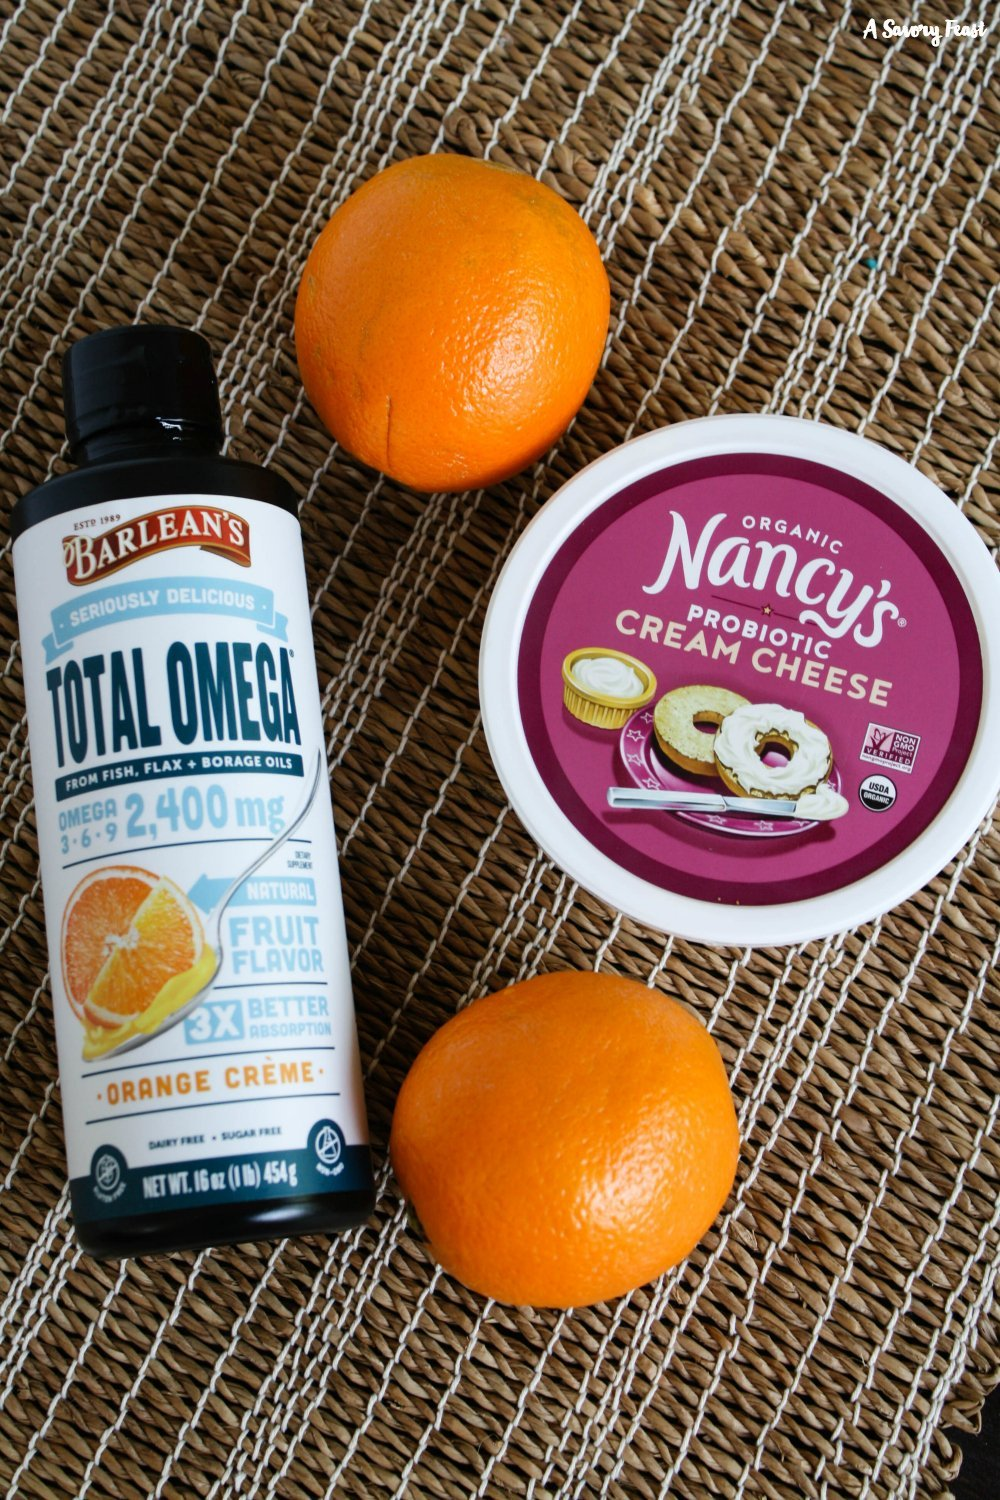 Barlean's Seriously Delicious Total Omega Orange Creme and Nancy's Probiotic Yogurt